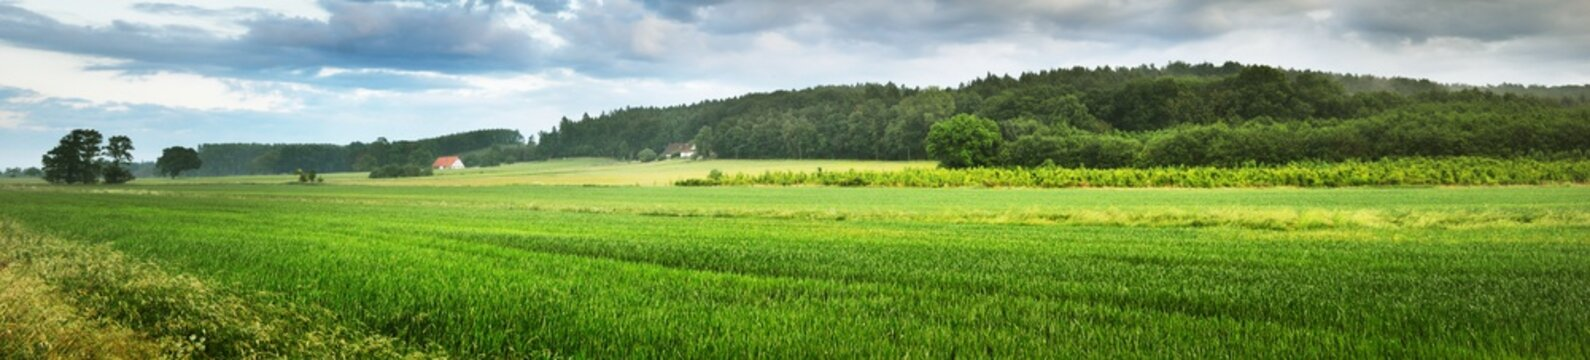 Picturesque panoramic scenery of the green agricultural field, country house and forest hills in the background. Osnabruck, Germany. Idyllic rural scene. Atmospheric spring landscape